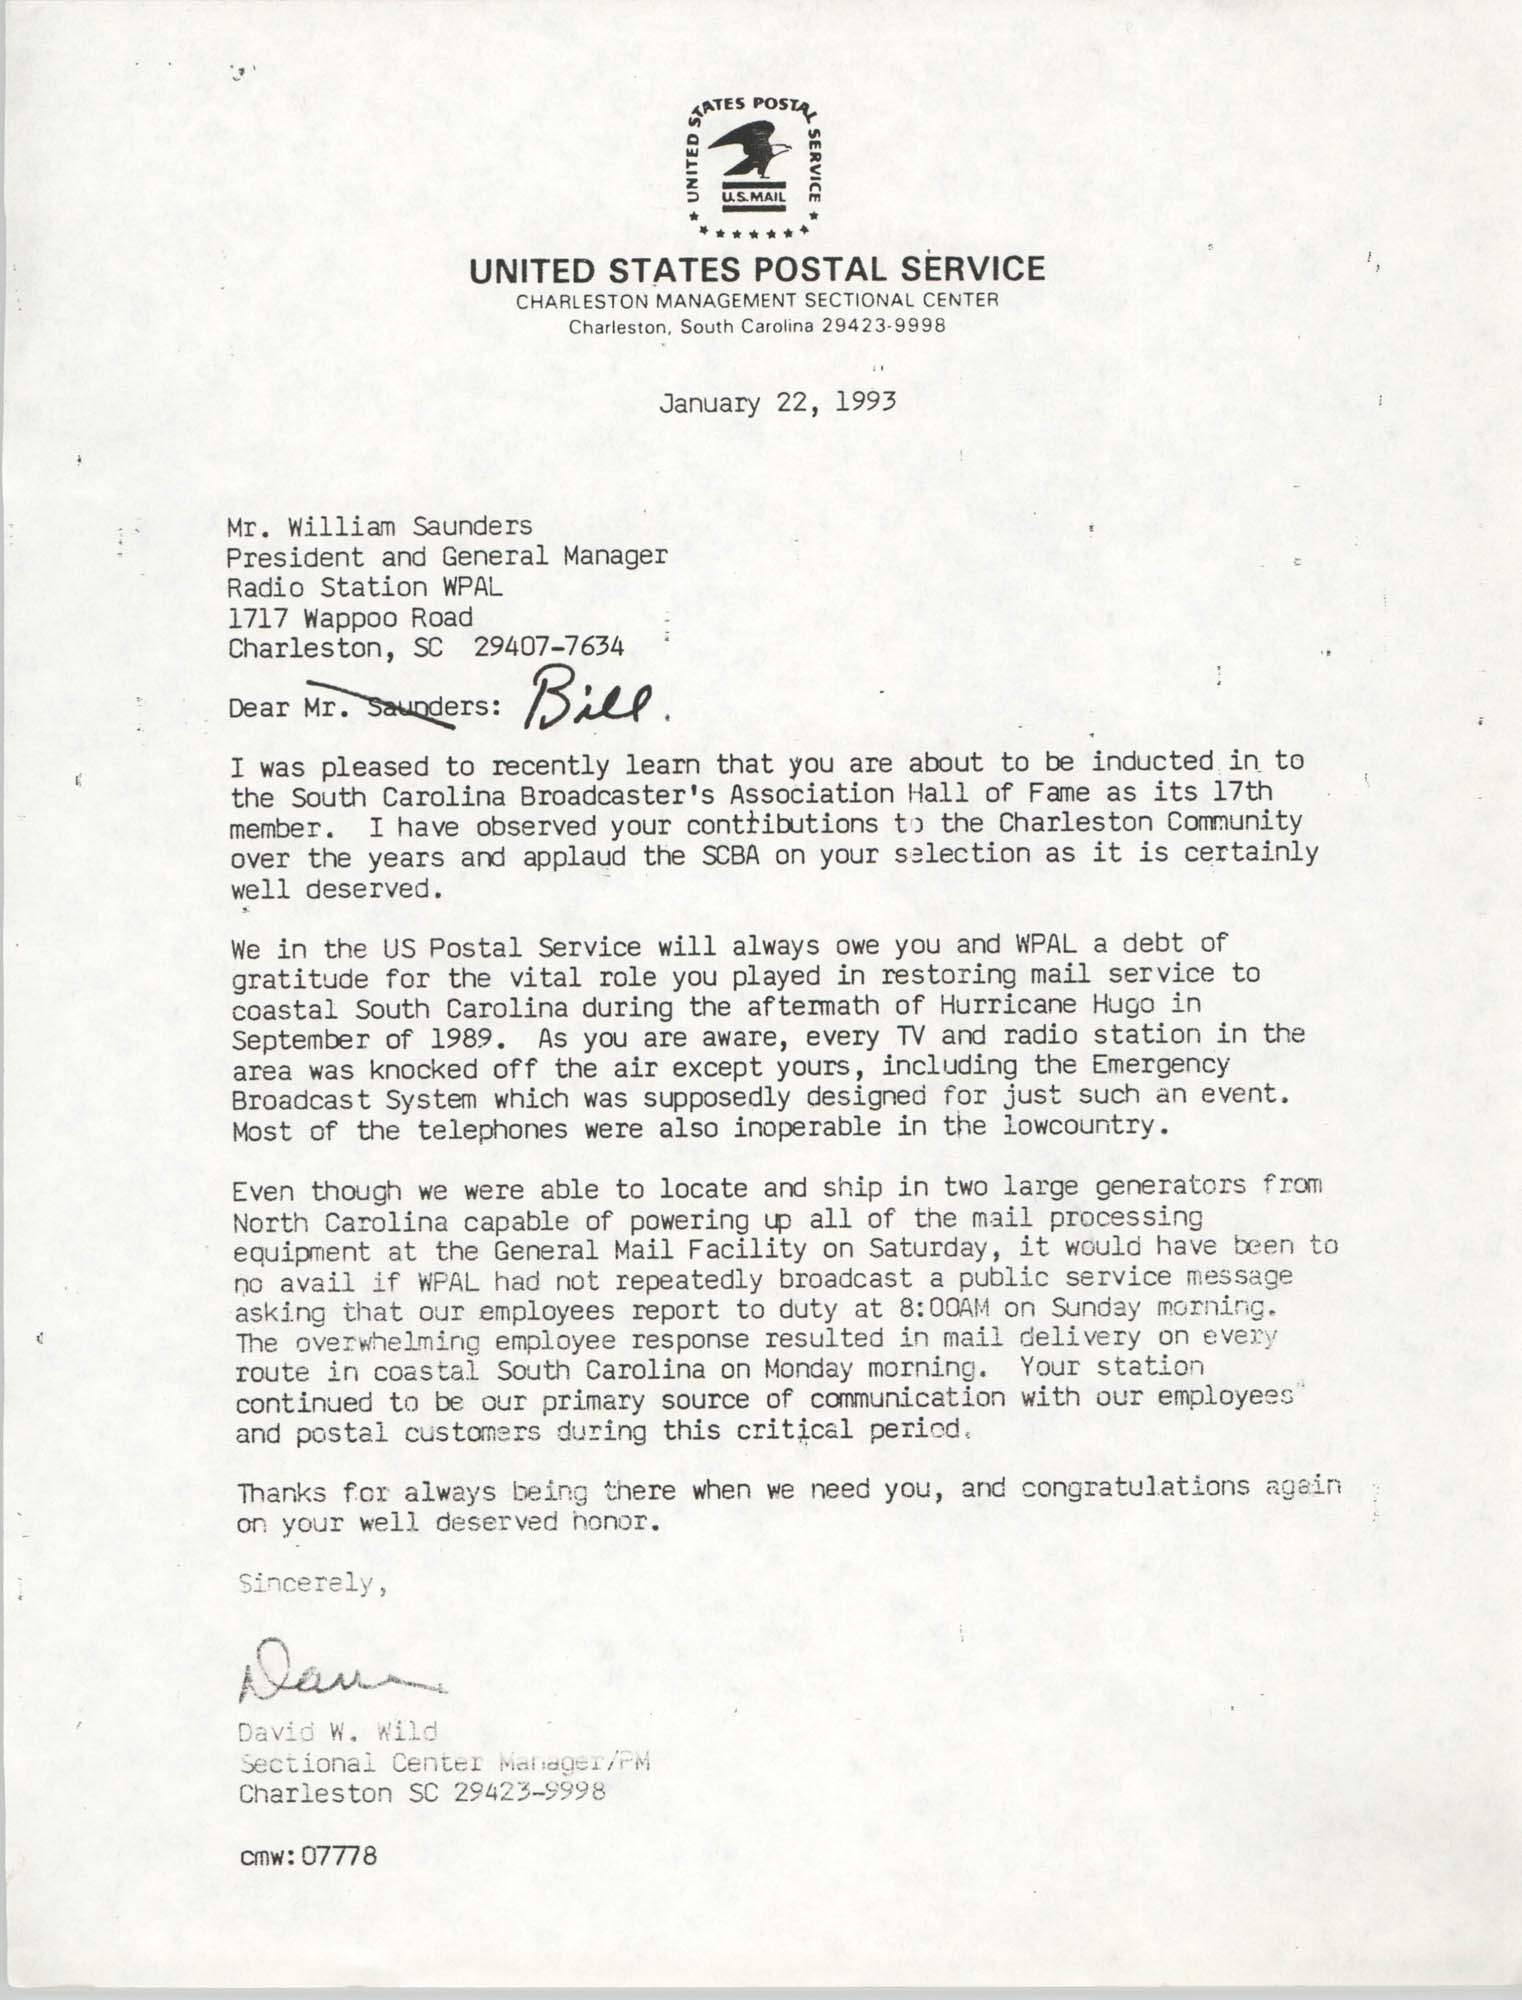 Letter from David W. Wild to William Saunders, Janary 22, 1993